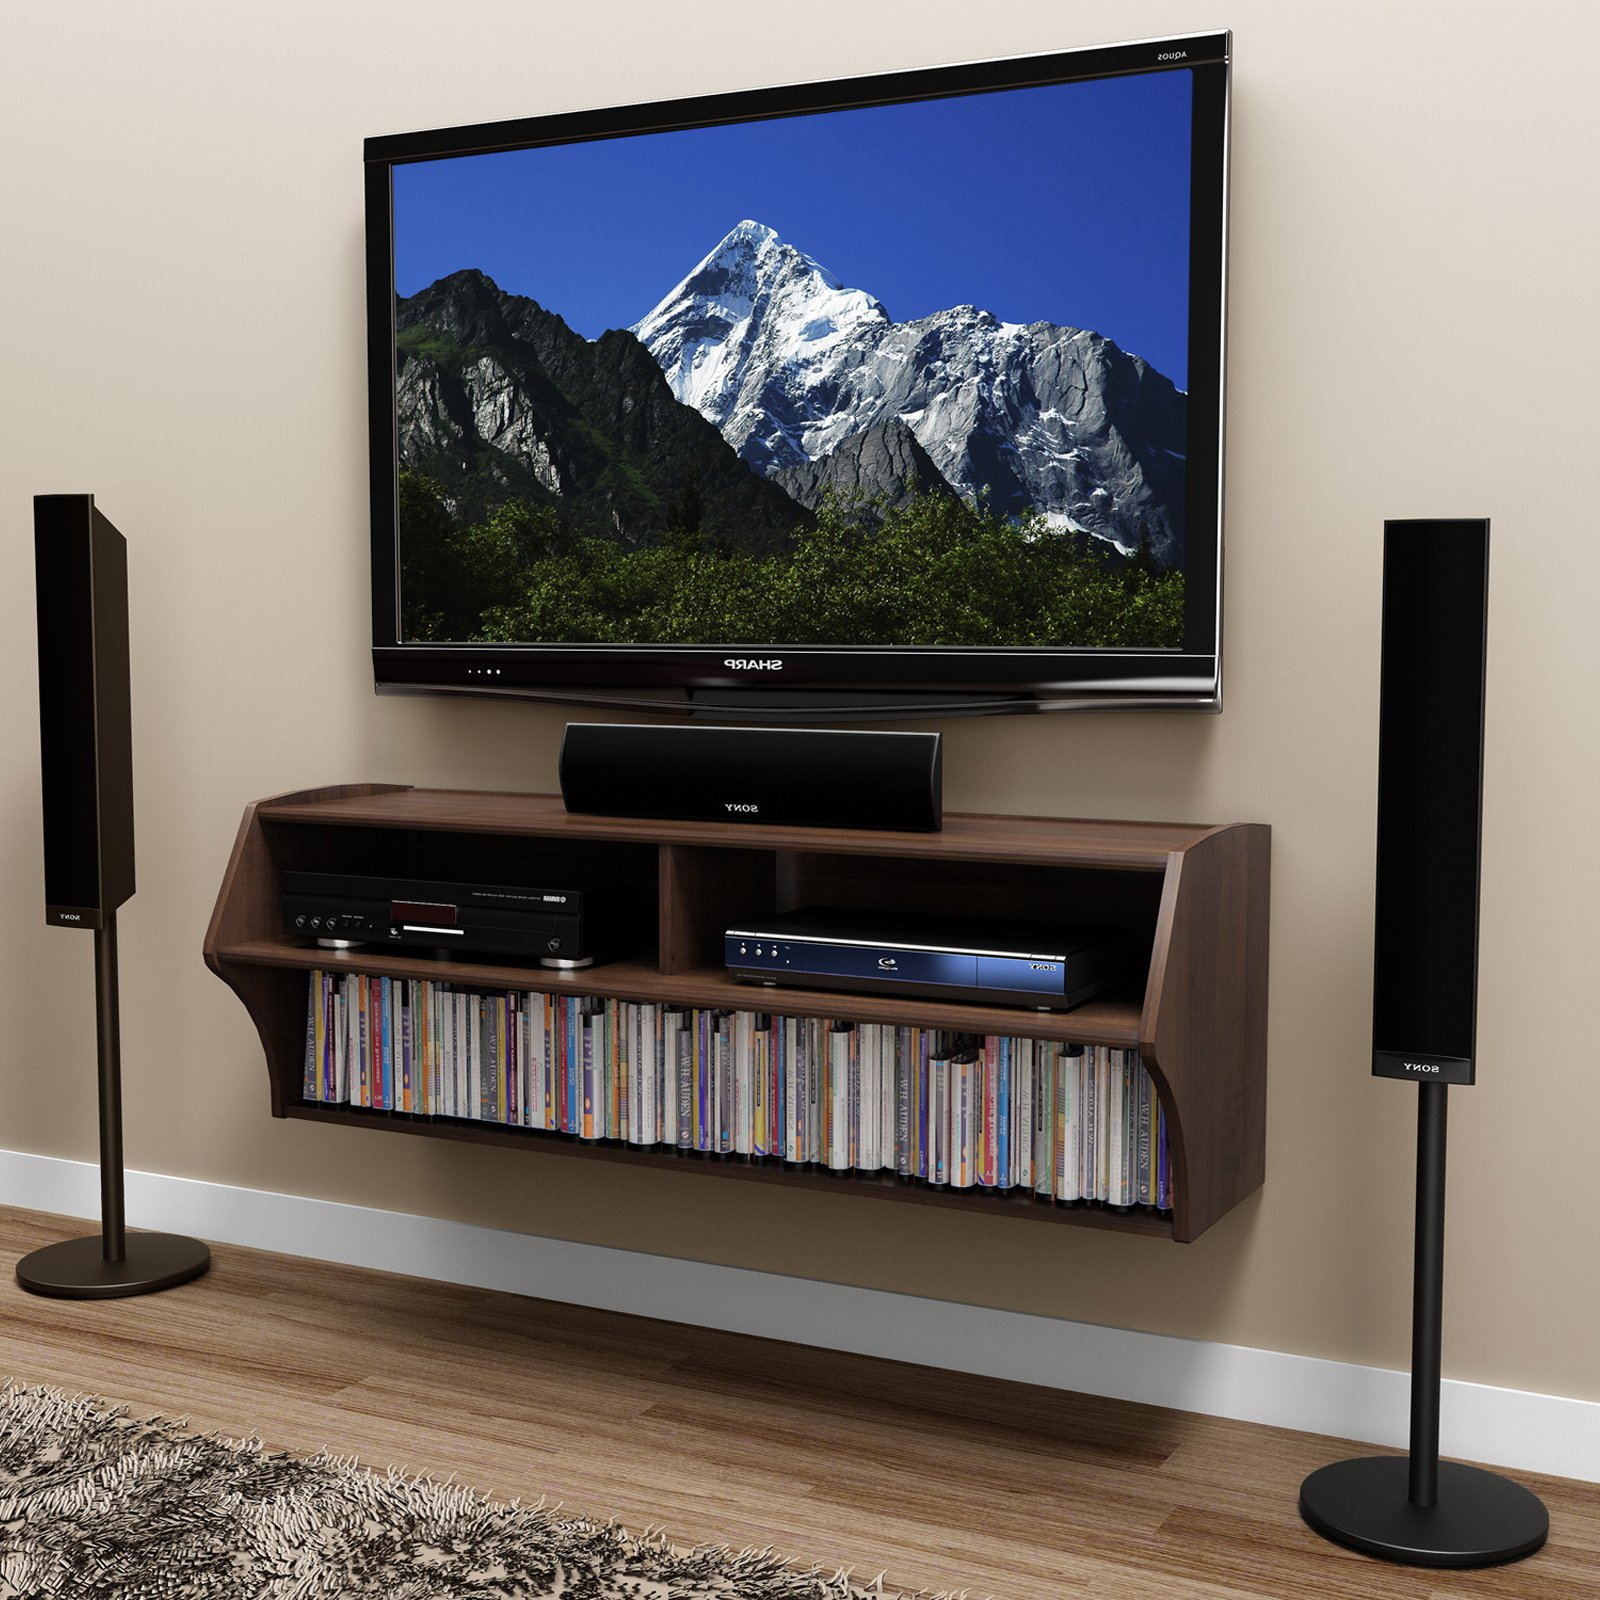 Prepac Altus Wall Mounted A/v Tv Stand, Multiple Finishes – Walmart Intended For Well Known Shelves For Tvs On The Wall (View 19 of 20)